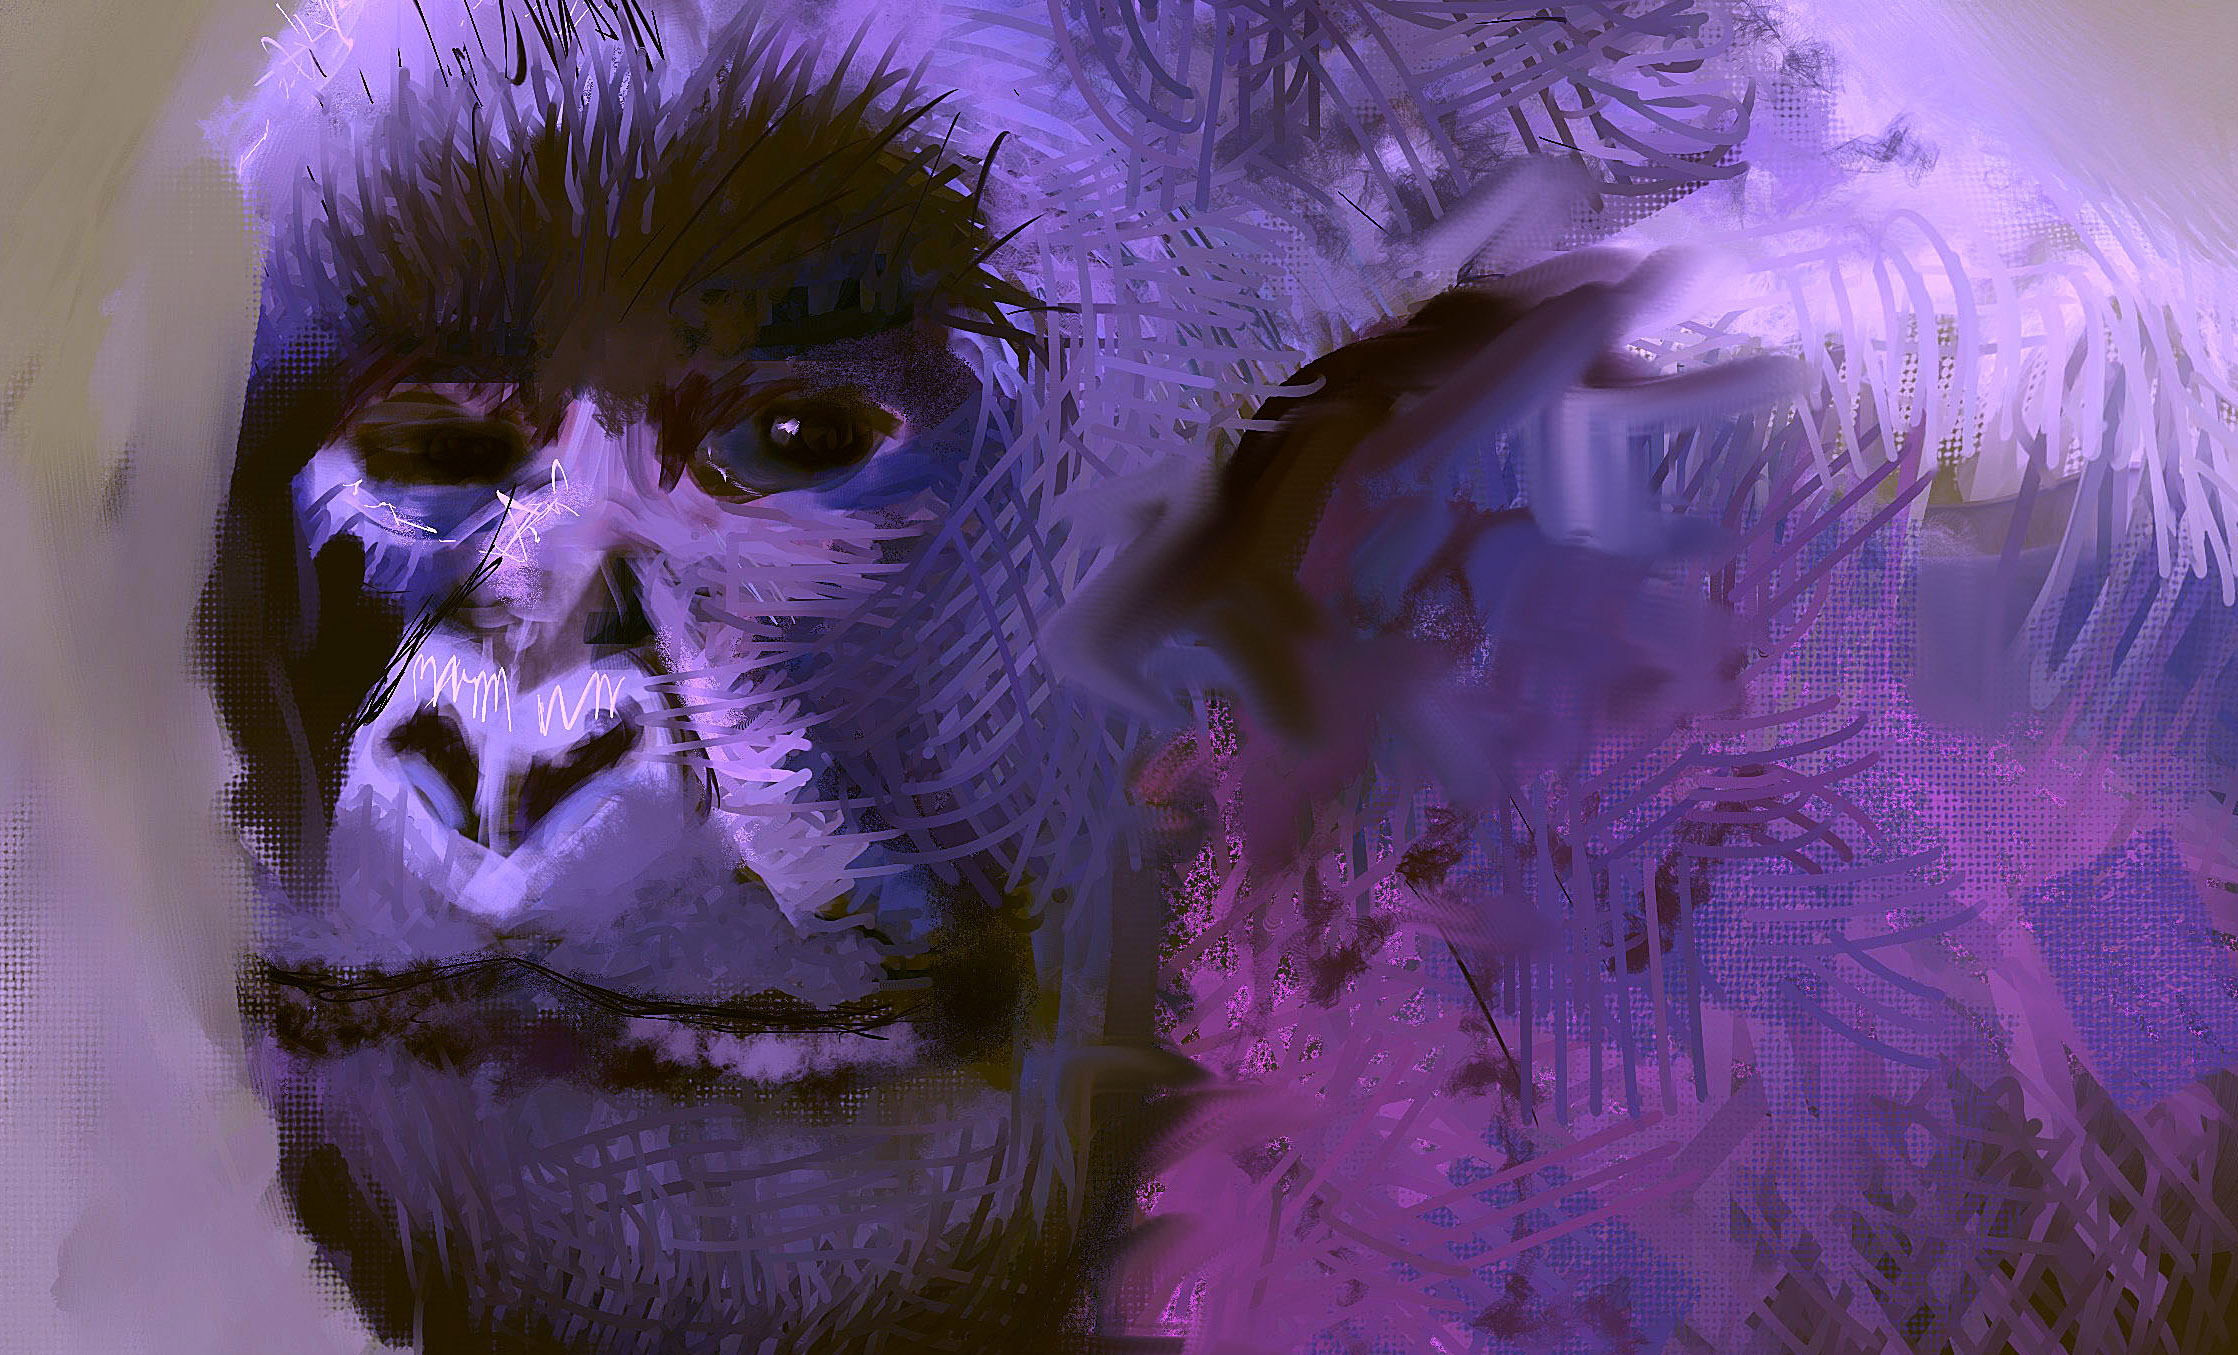 Closeup of the Harambe The Gorilla painting by Ori Bengal